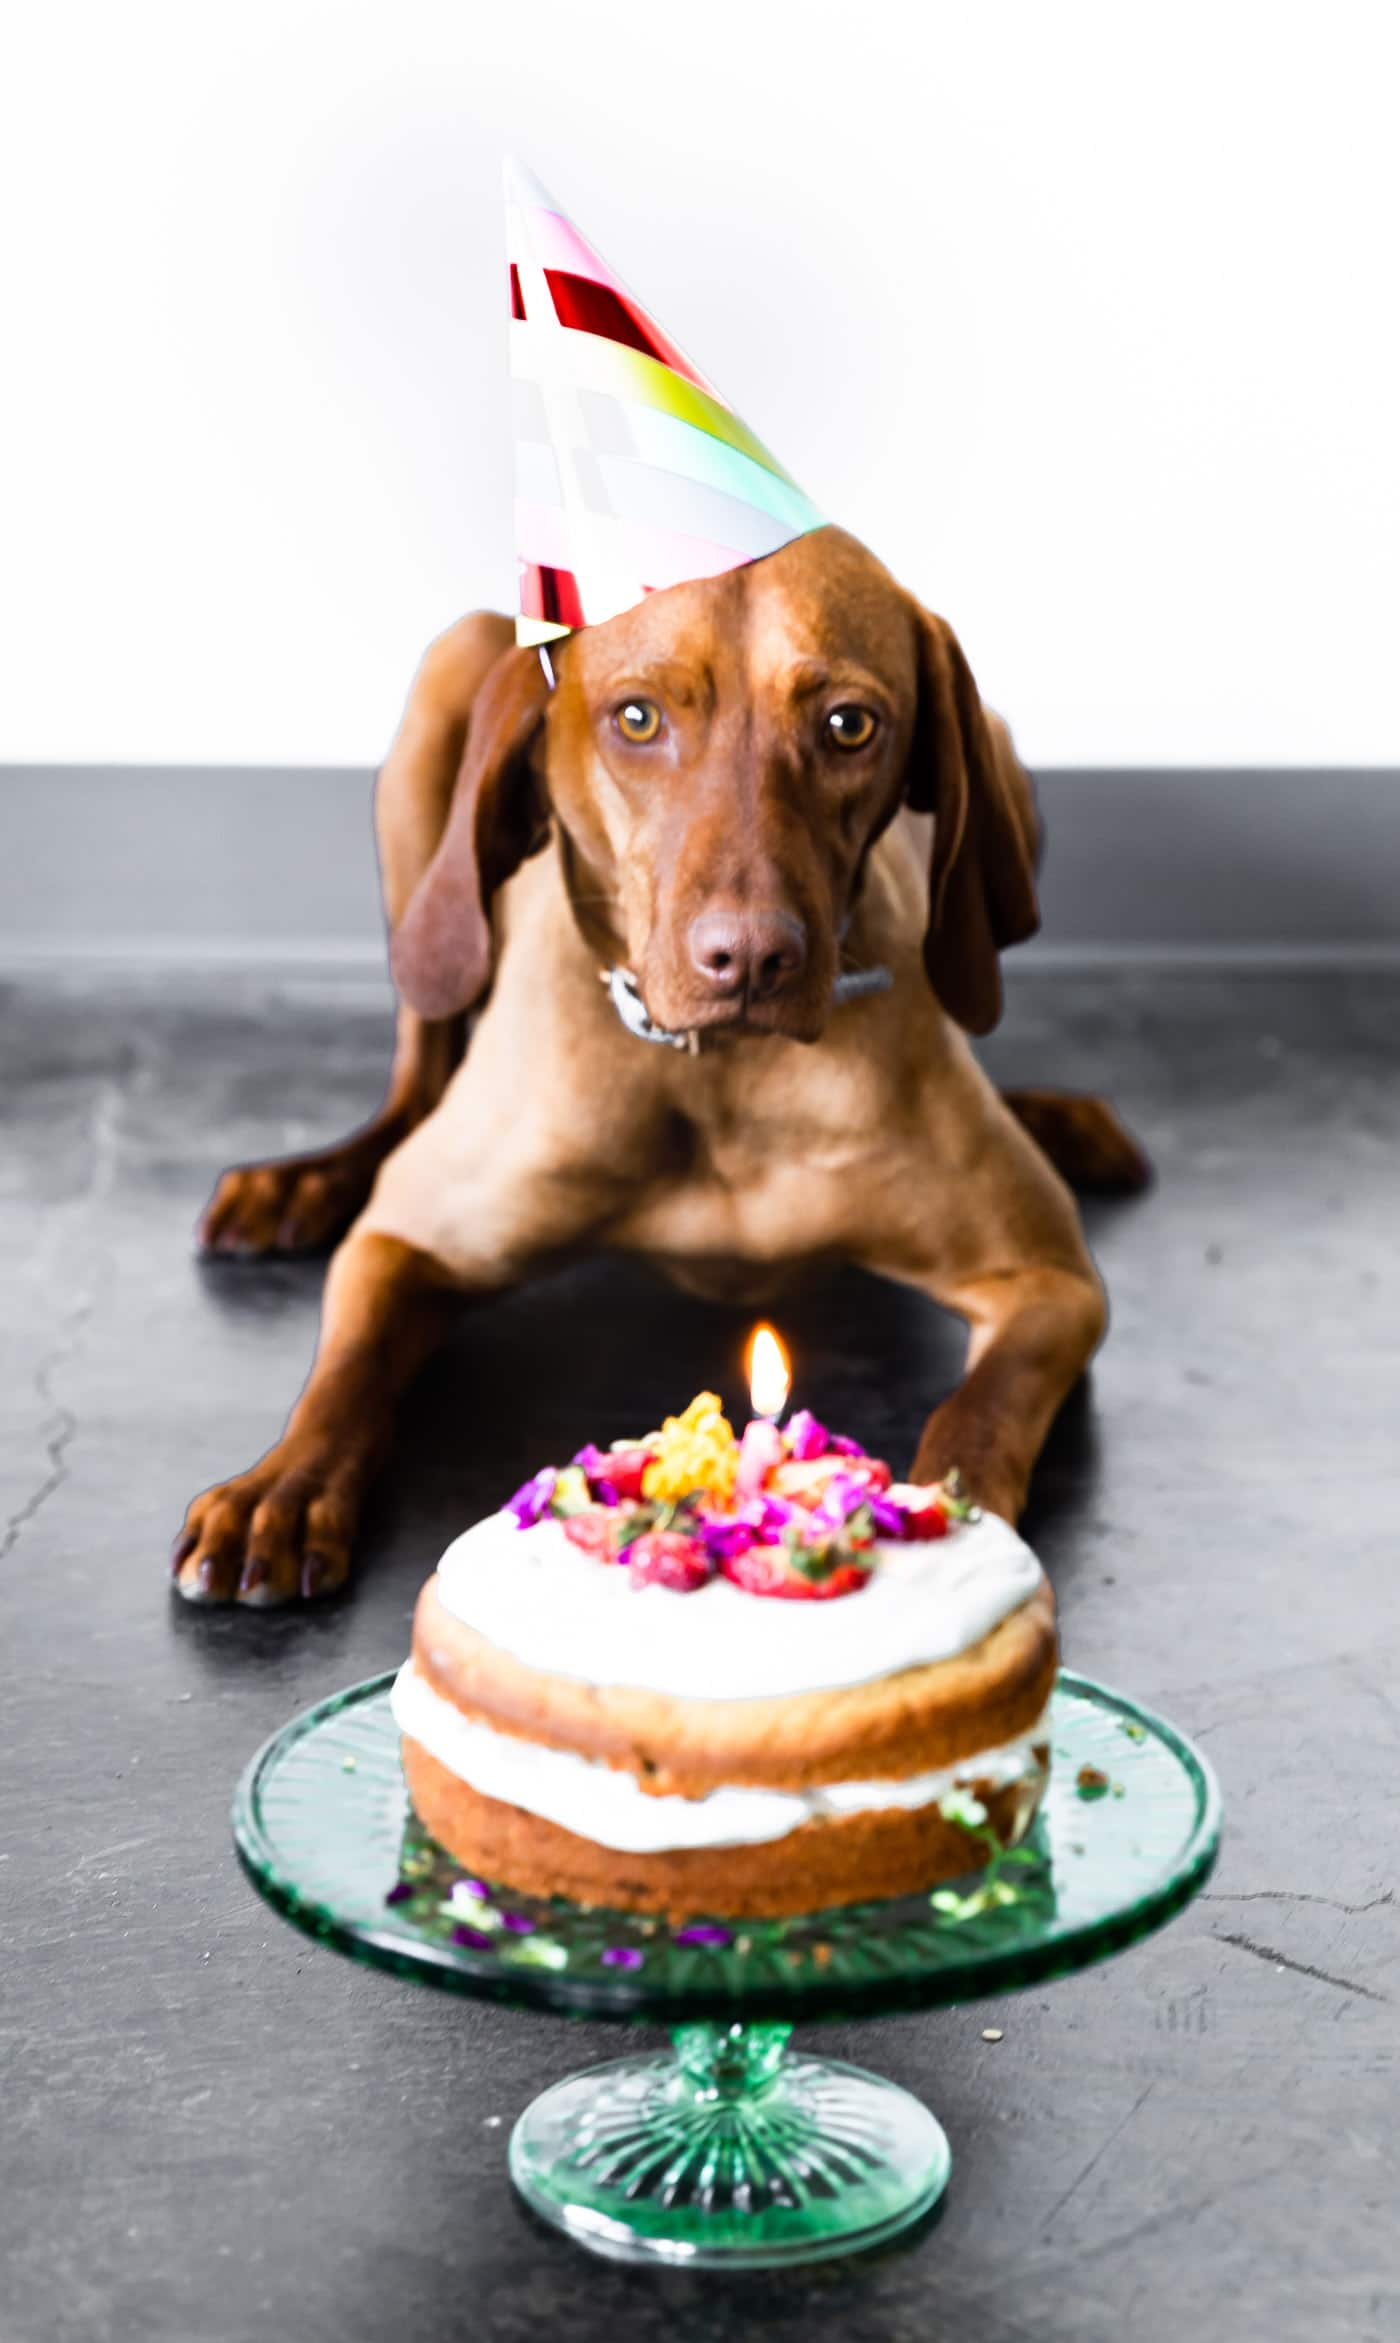 Magnificent Birthday Cake For Dogs Grain Free Recipe Cotter Crunch Funny Birthday Cards Online Chimdamsfinfo